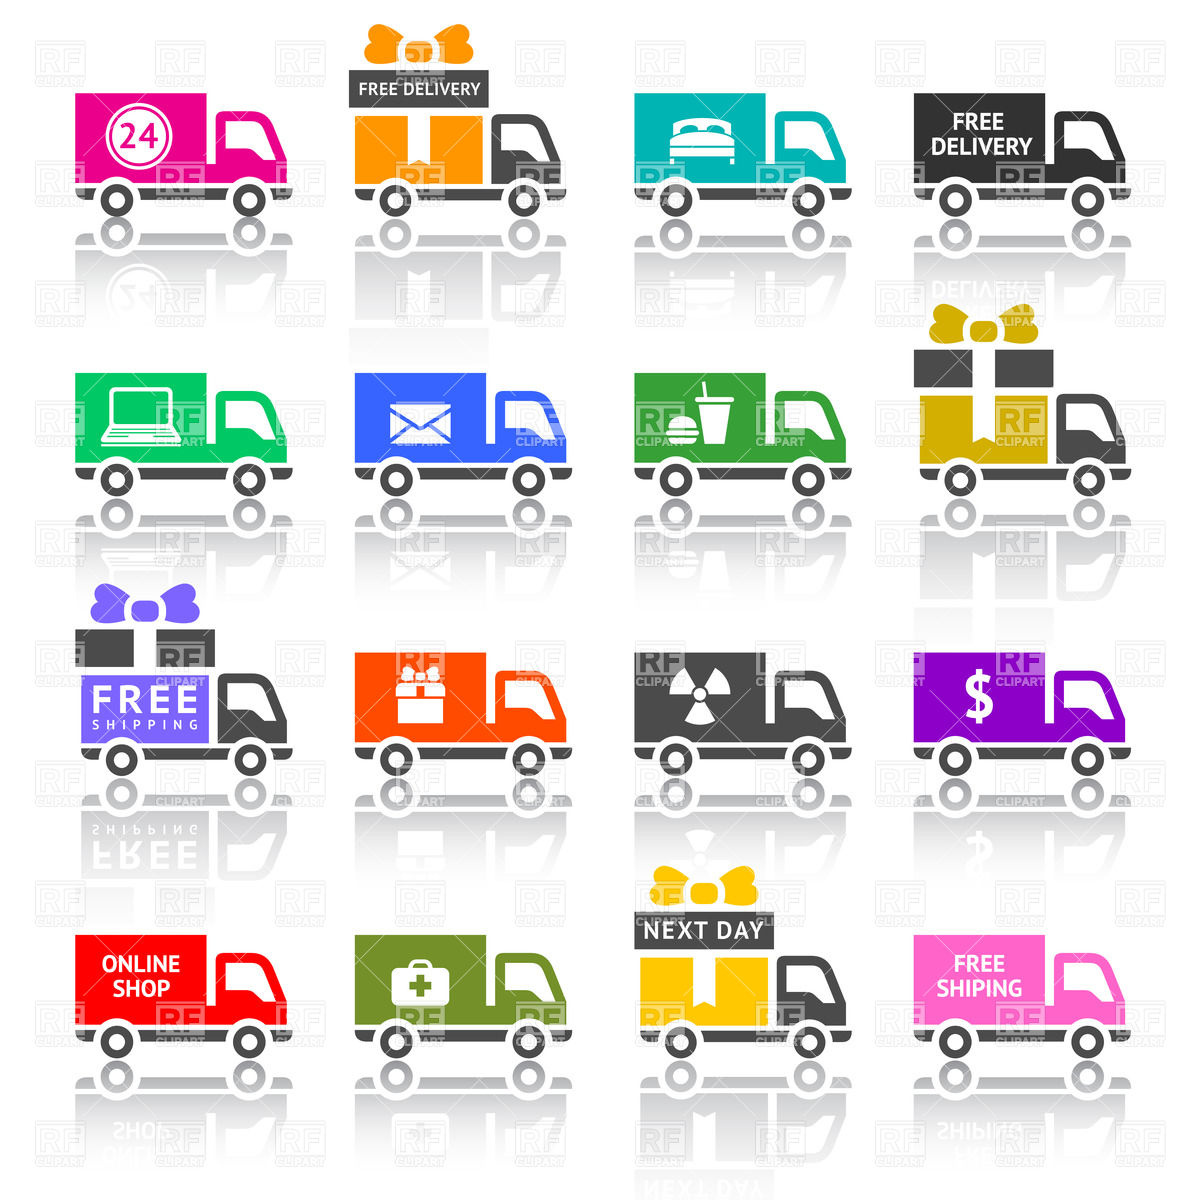 Delivery Van And Conveyance Lorry   Icon Set 18133 Download Royalty